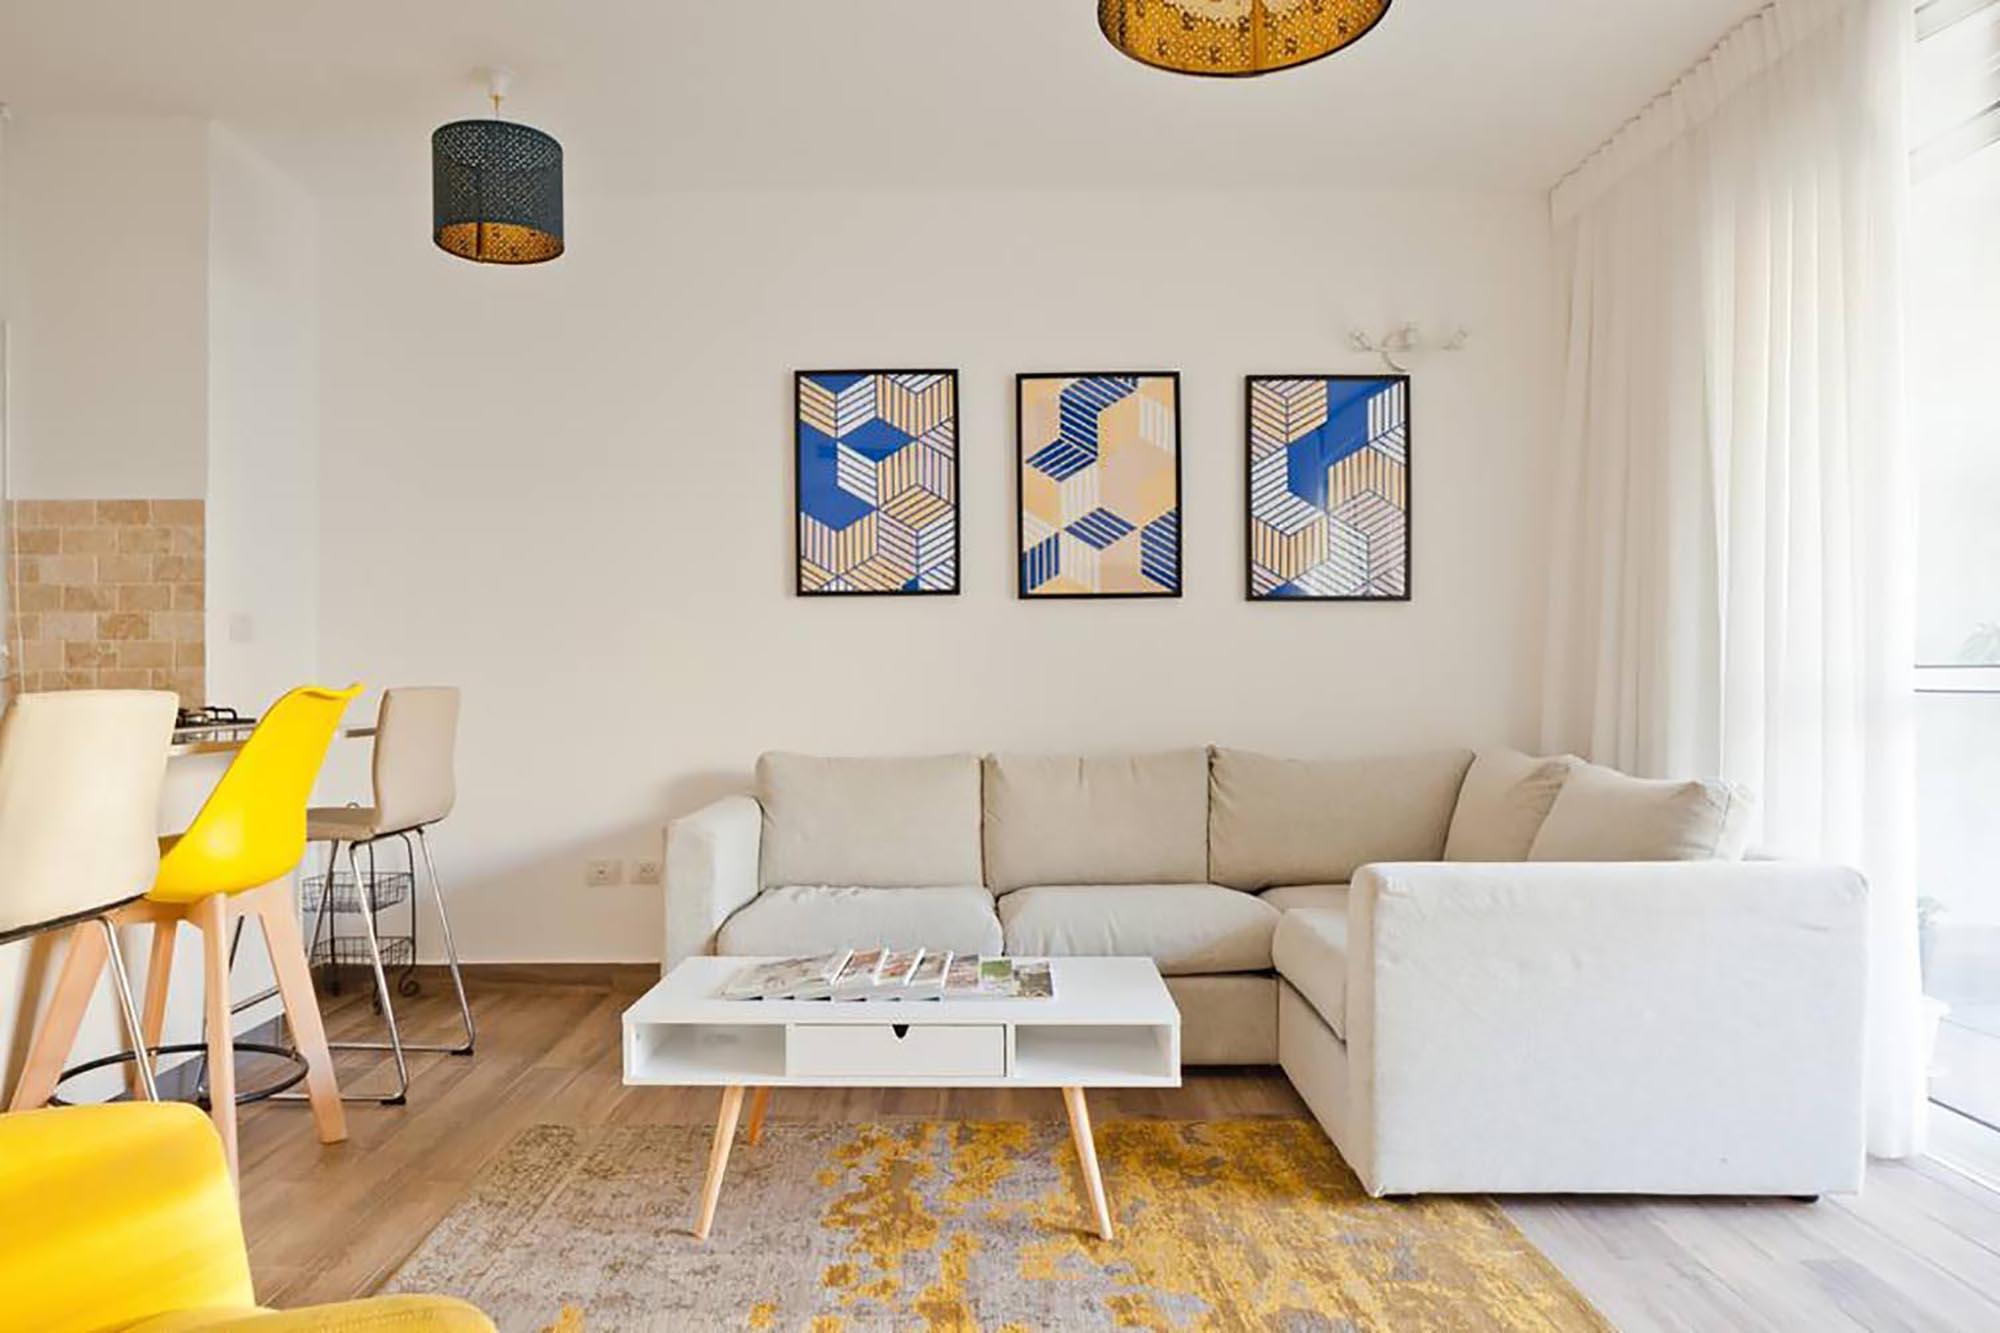 Modern 2 bedroom apartment in the heart of Jaffa